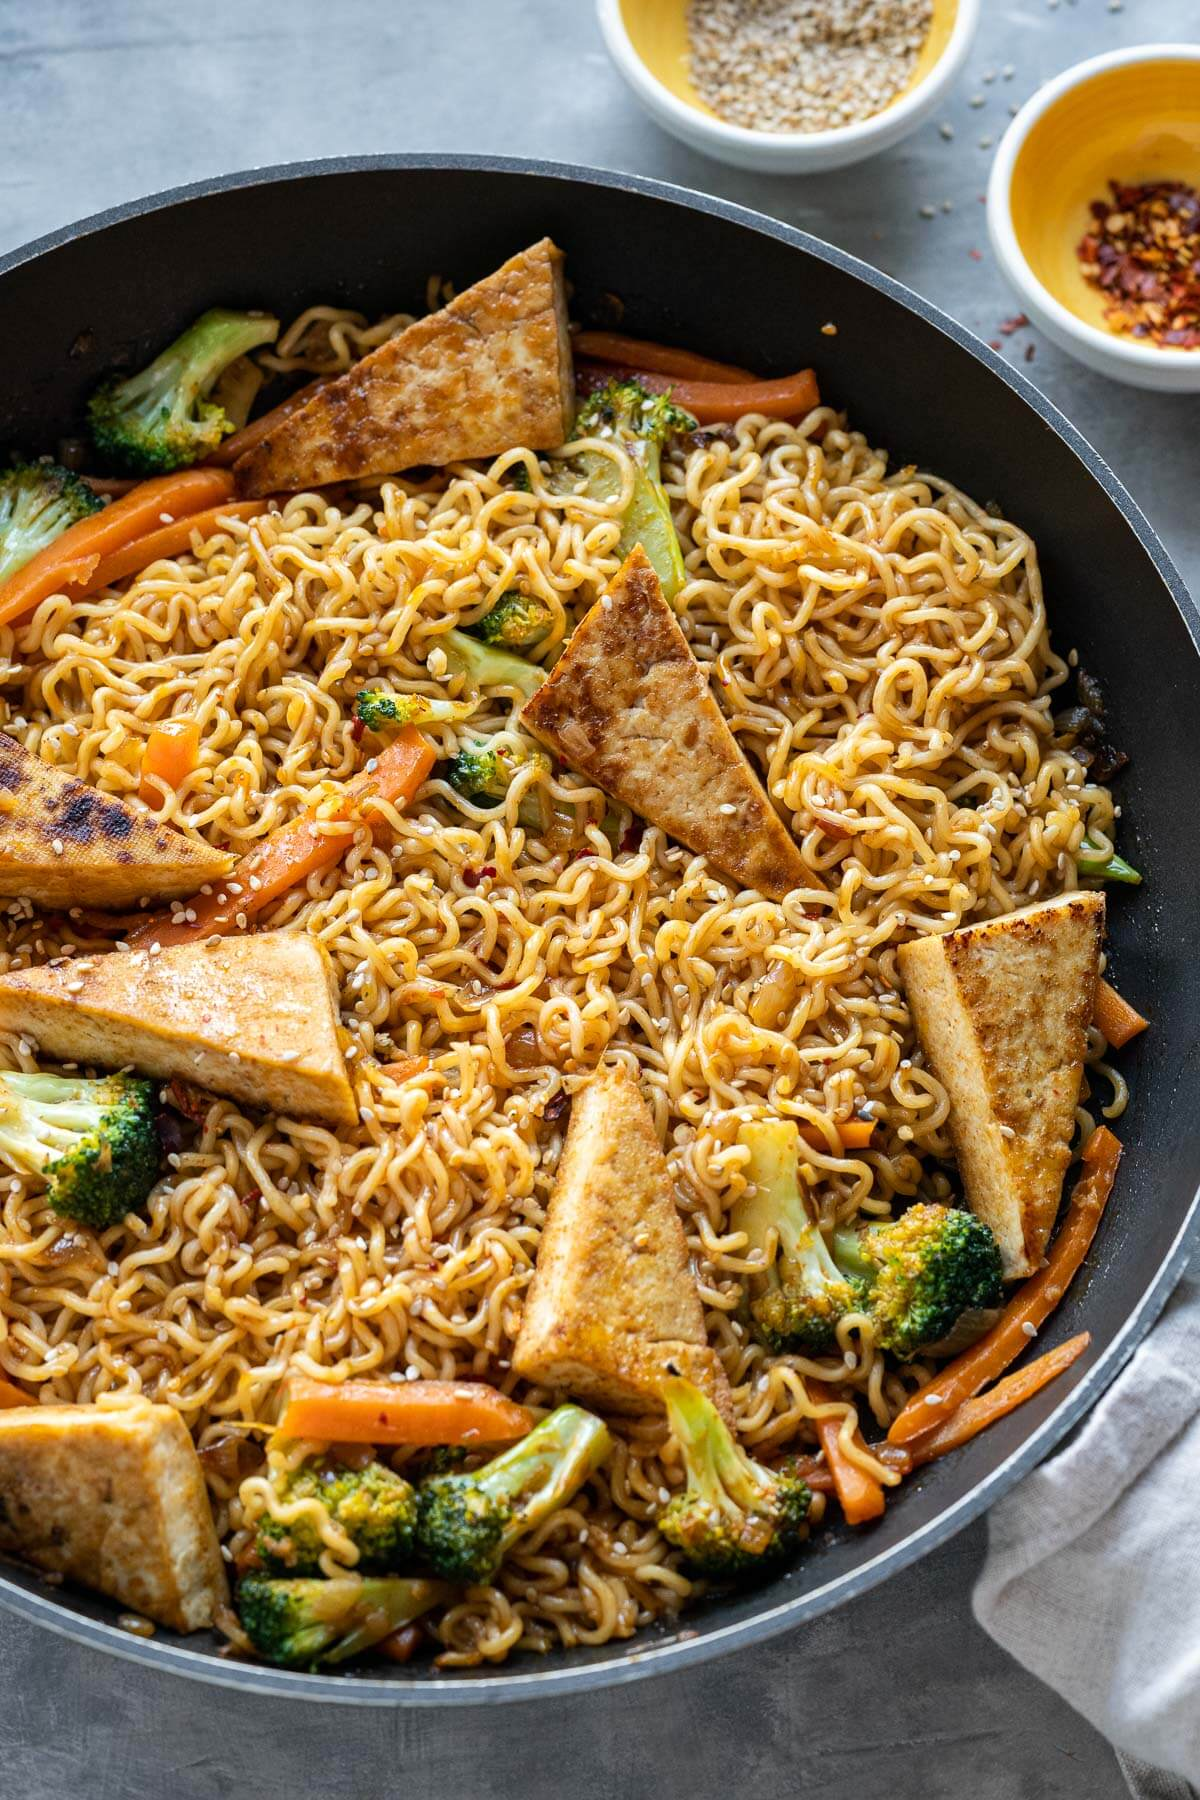 Ramen Noodle Stir Fry with Tofu